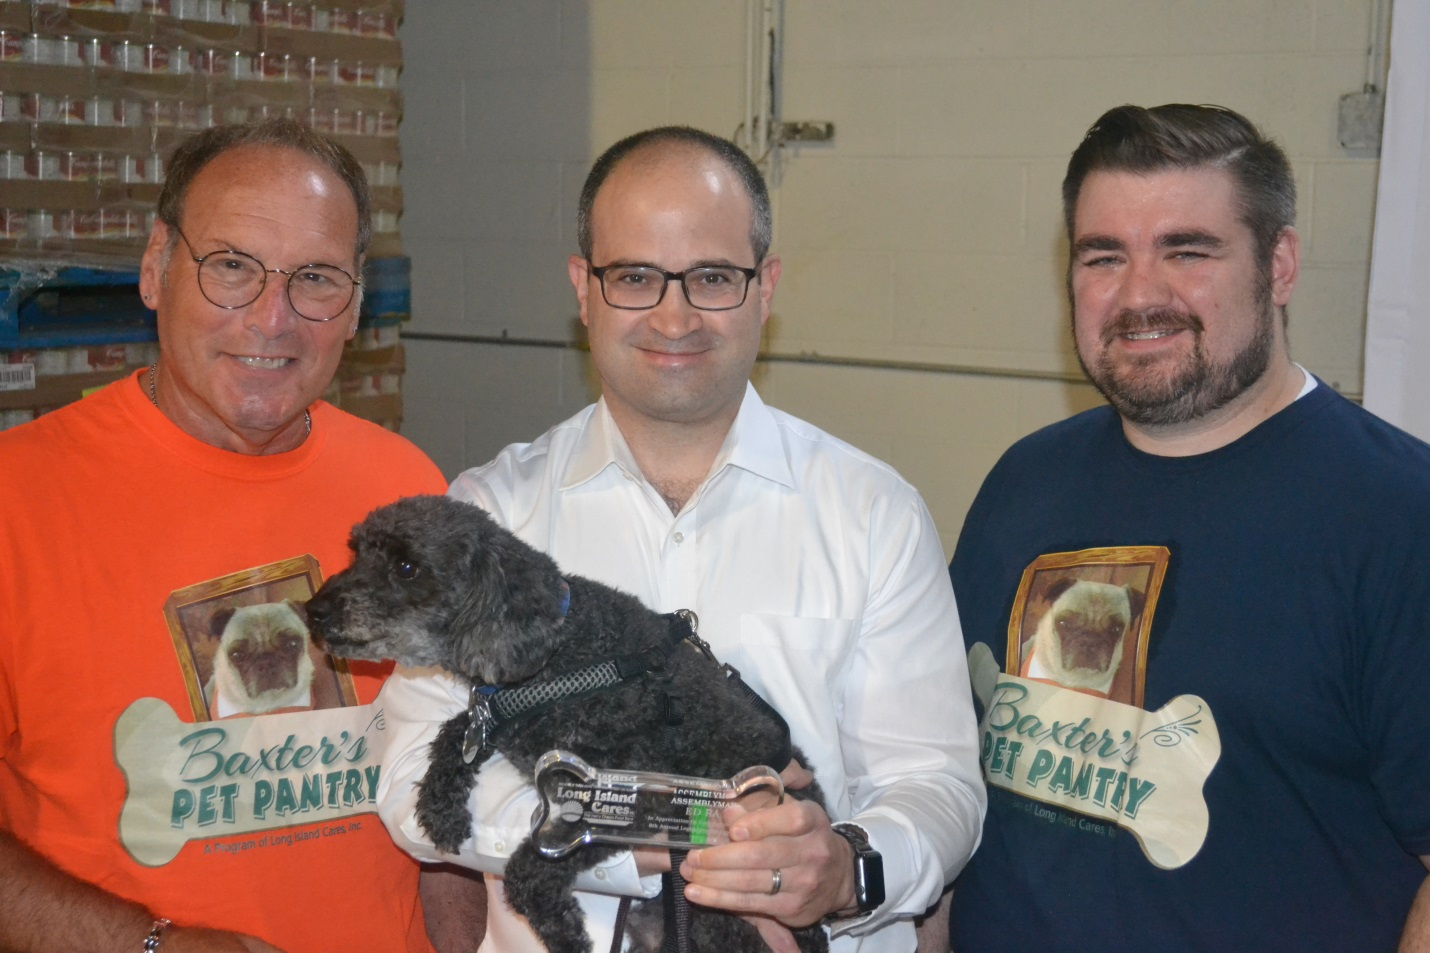 Assemblyman Ra (center) and his rescue dog, Carter, accept an award from Long Island Cares CEO, Paule T. Pachter (left) and Community Events and Food Drive Manager, Billy Gonyou (right) for their part